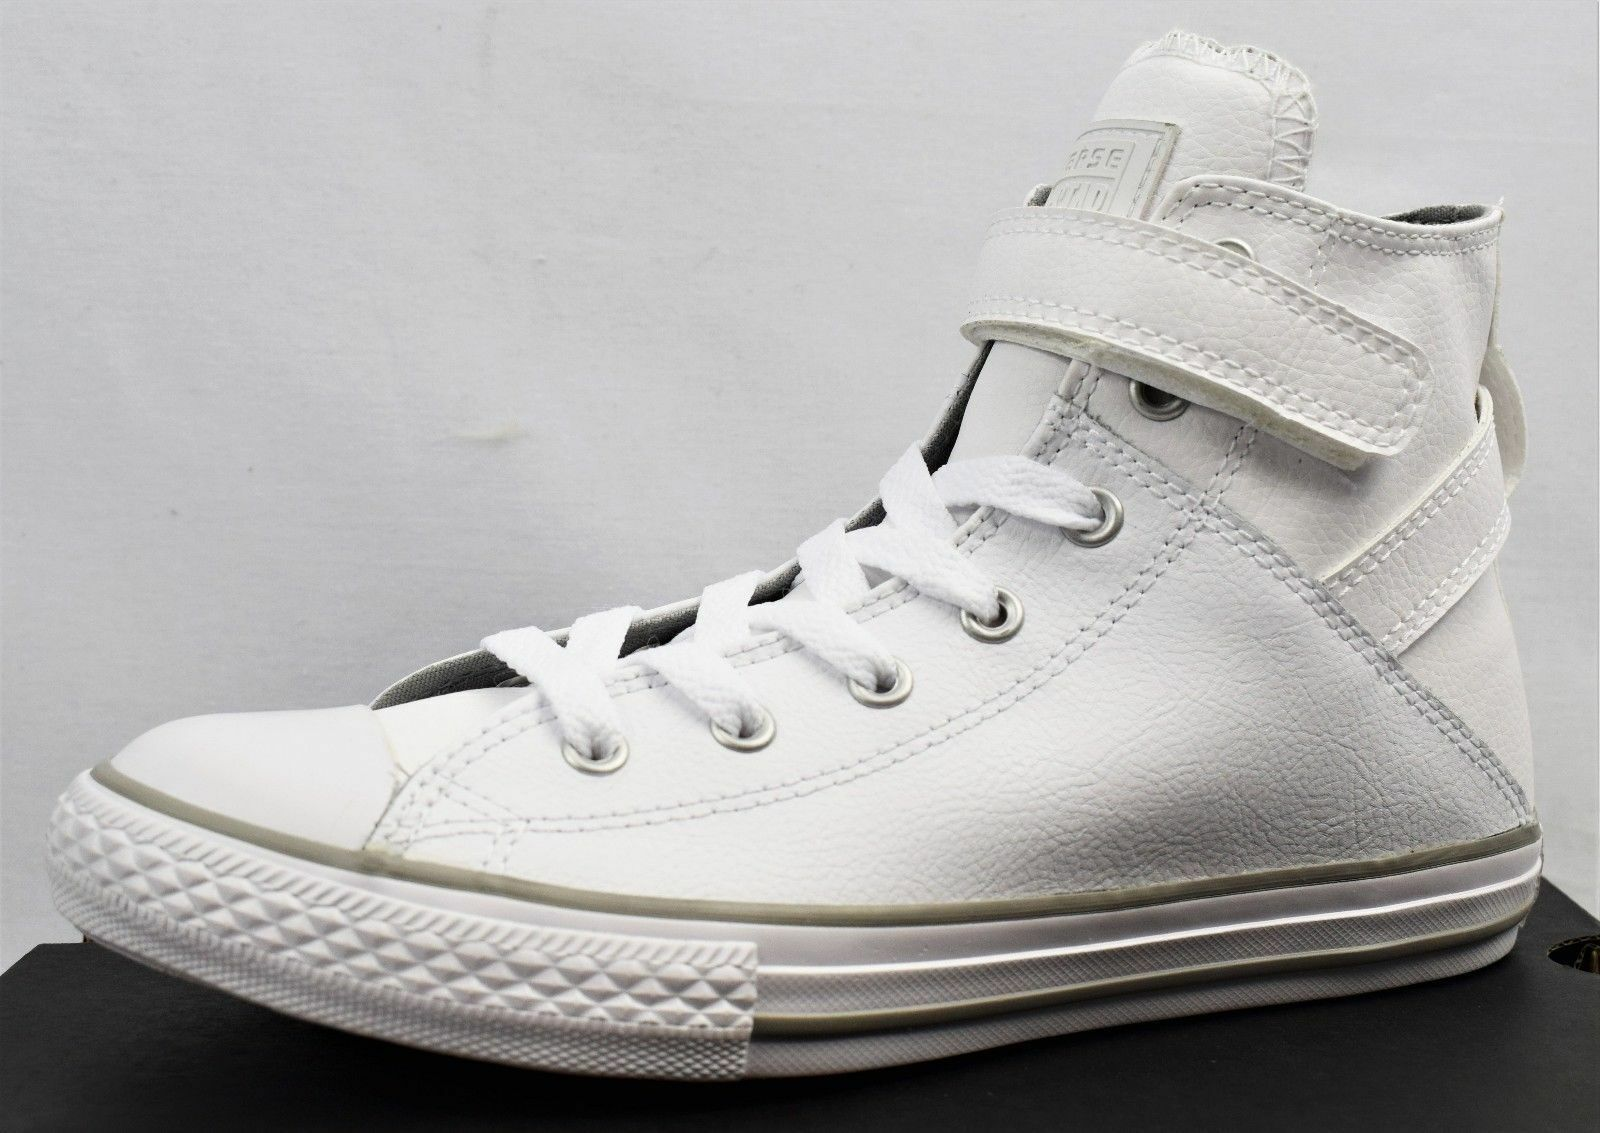 CONVERSE NEW CHUCK TAYLOR CTAS BREA HI JUNIOR TRAINERS BRAND NEW CONVERSE SIZE UK 3.5 (H12) ed9ab4